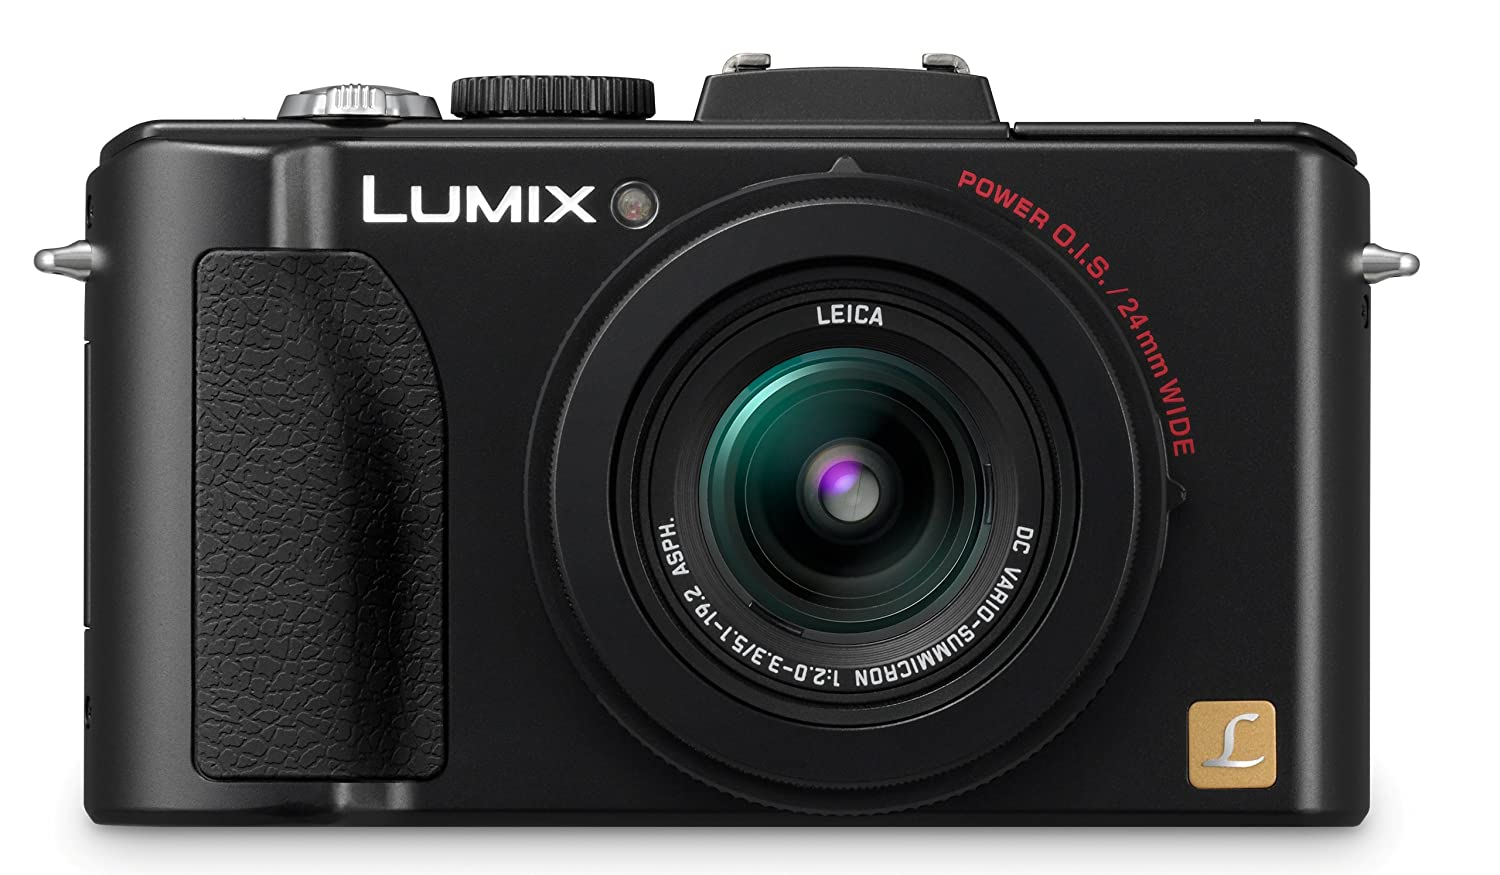 Panasonic Lumix DMC-LX5 10.1 MP Digital Camera with 3.8x Optical Image Stabilized Zoom and 3.0-Inch LCD &#8211; Black